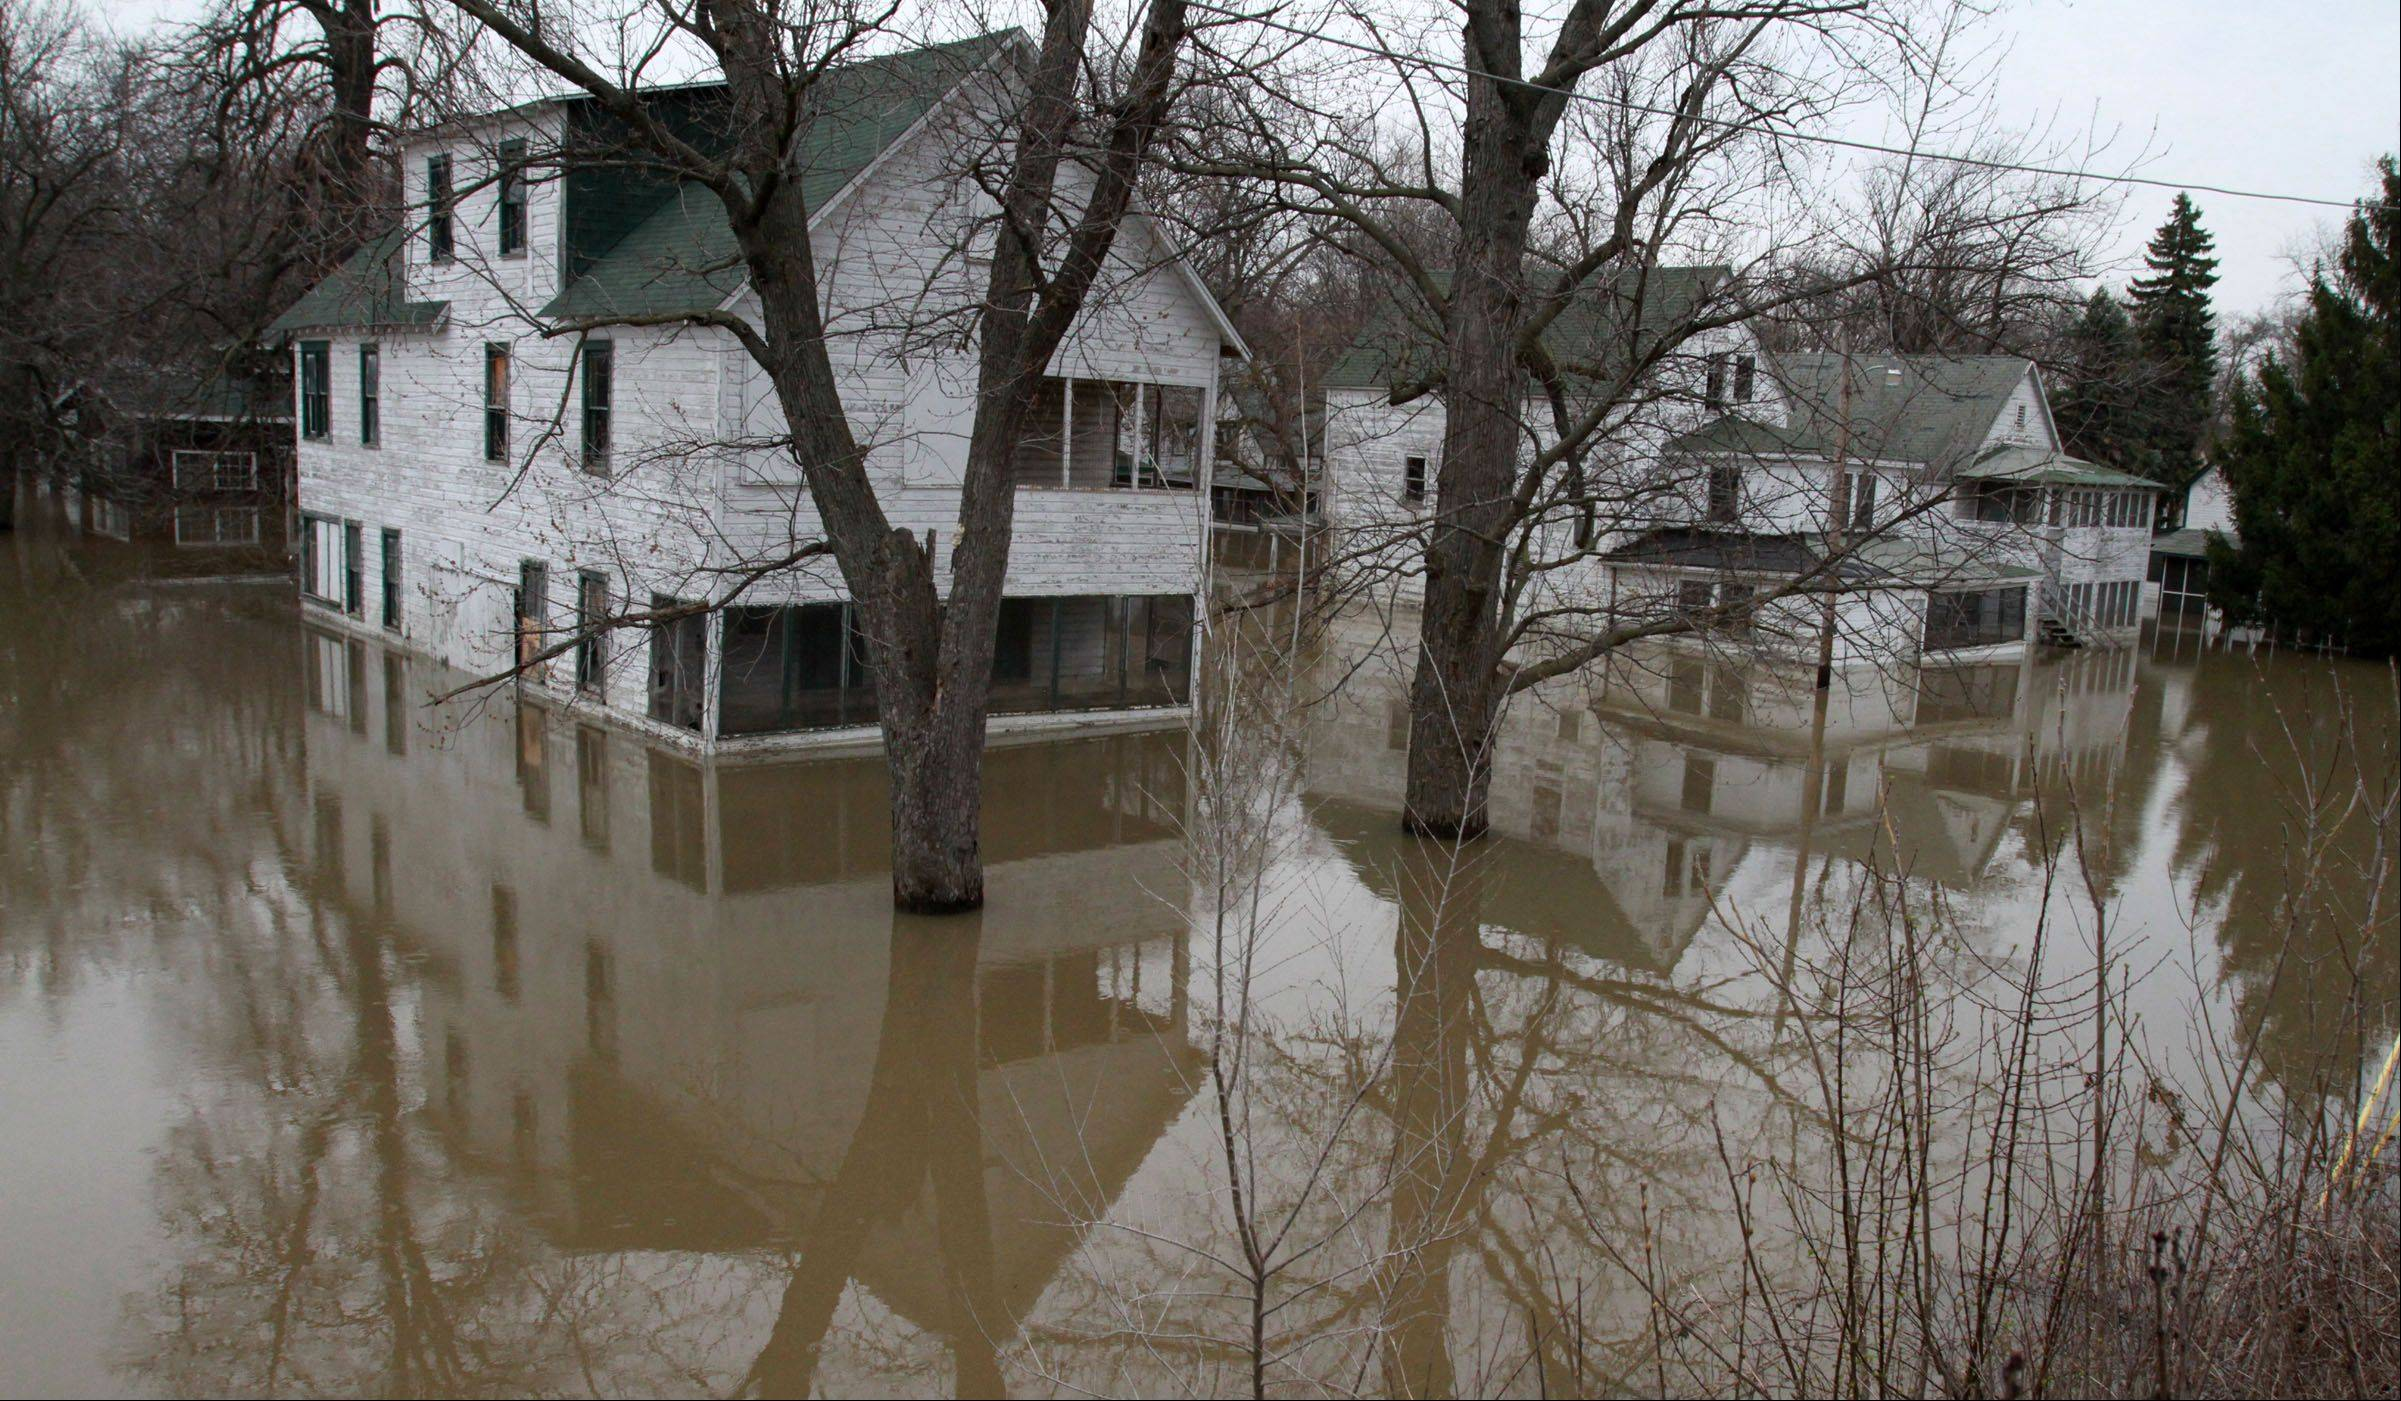 The flooded Des Plaines Methodist Camp Ground in Des Plaines on Tuesday, April 23